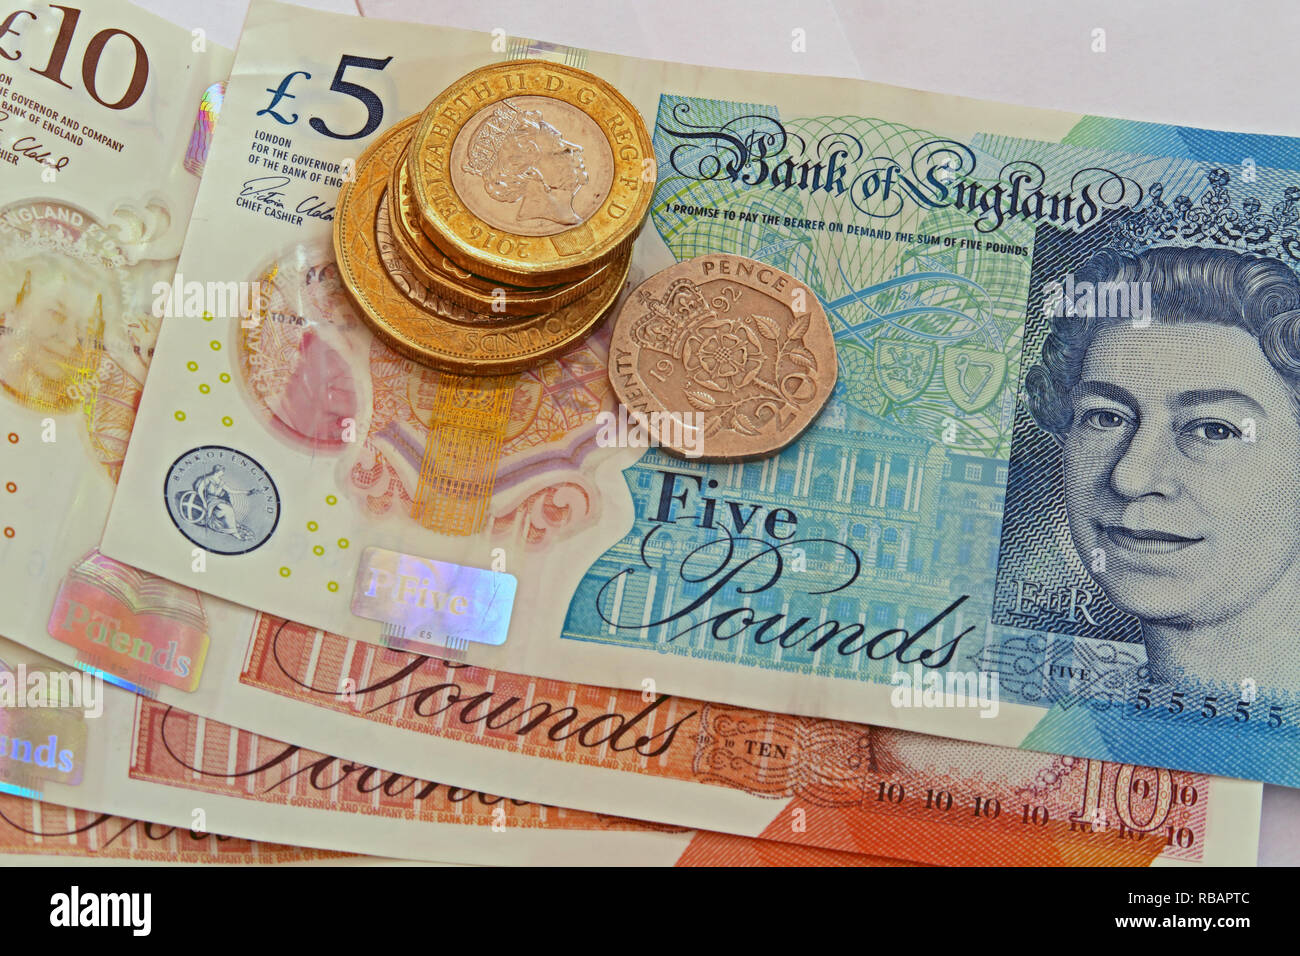 gotonysmith,HotpixUK,@HotpixUK,UK,notes,plastic,currency,10,5,ten,five,pound note,STG,British,bank,banking,accepted,acceptable,currency conversion,sterling,conversion from sterling,investment,budget,save,savings,English,£5,£10,£20,twenty,finance,investments,debt,Universal Credit,cash,black,market,economy,Cash In Hand